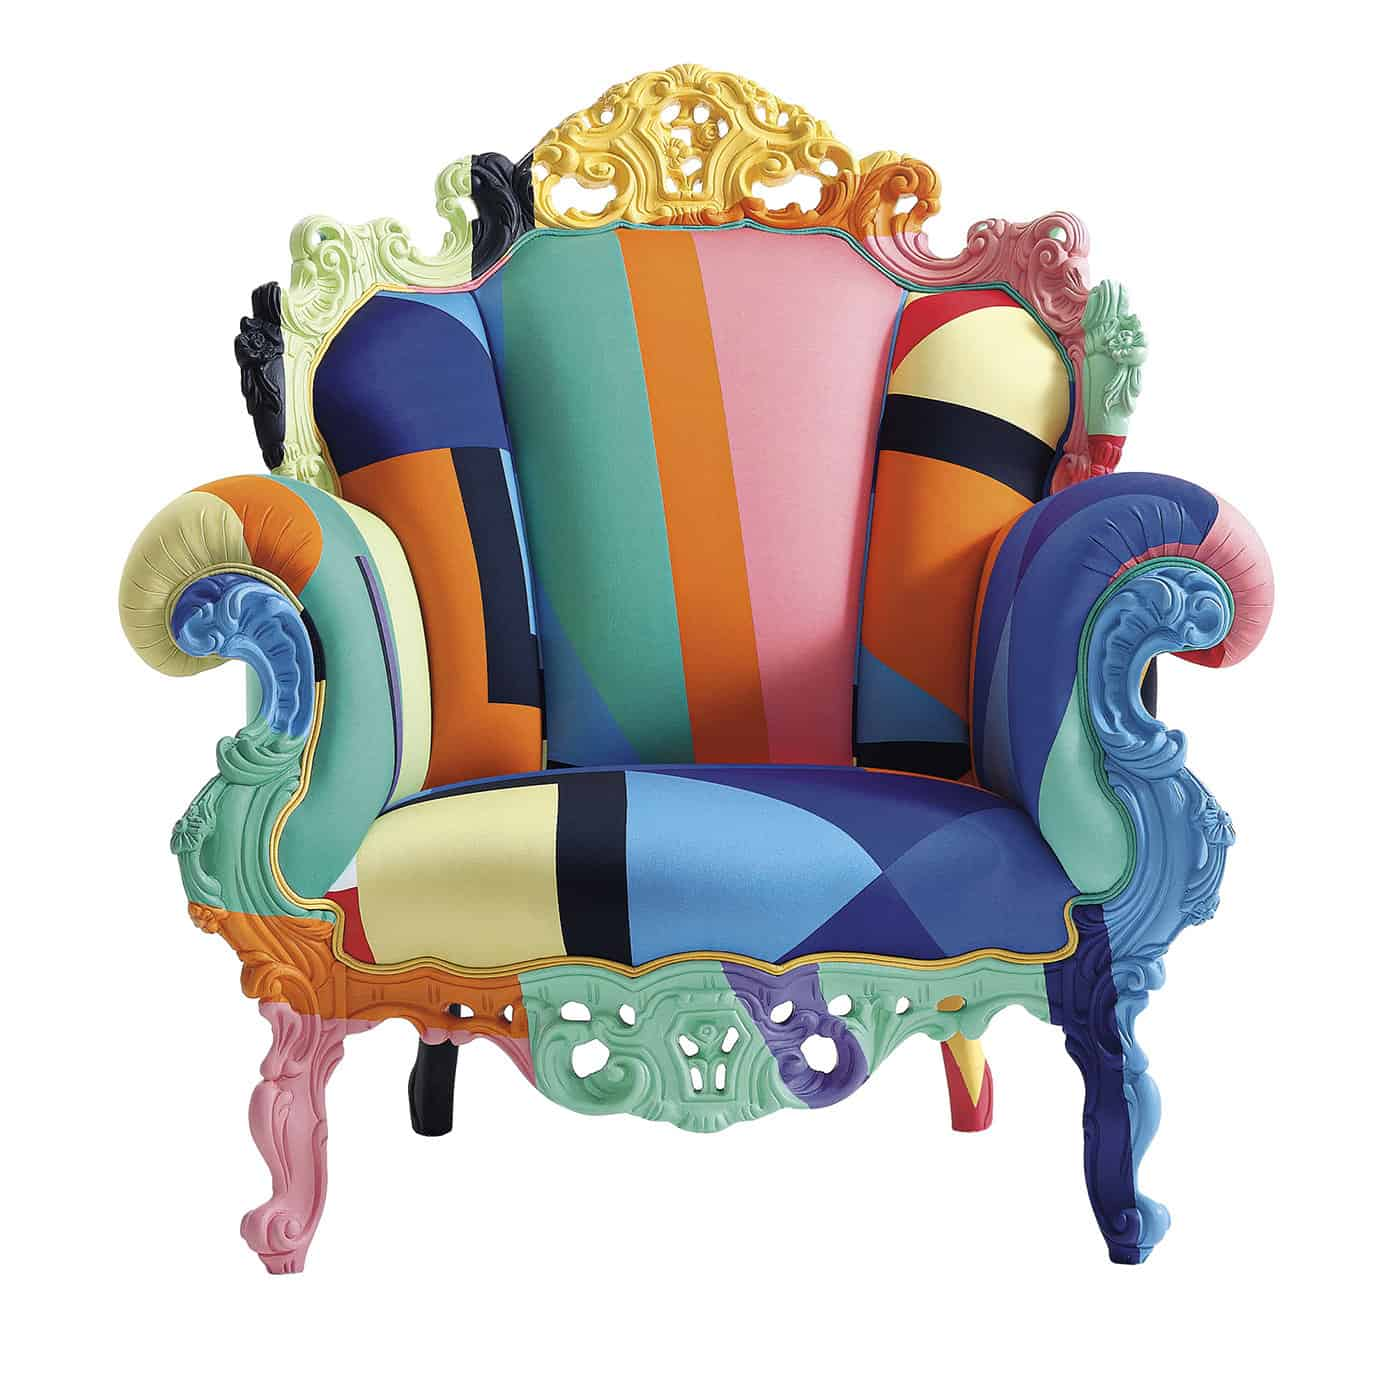 Proust Armchair by Alessandro Mendini